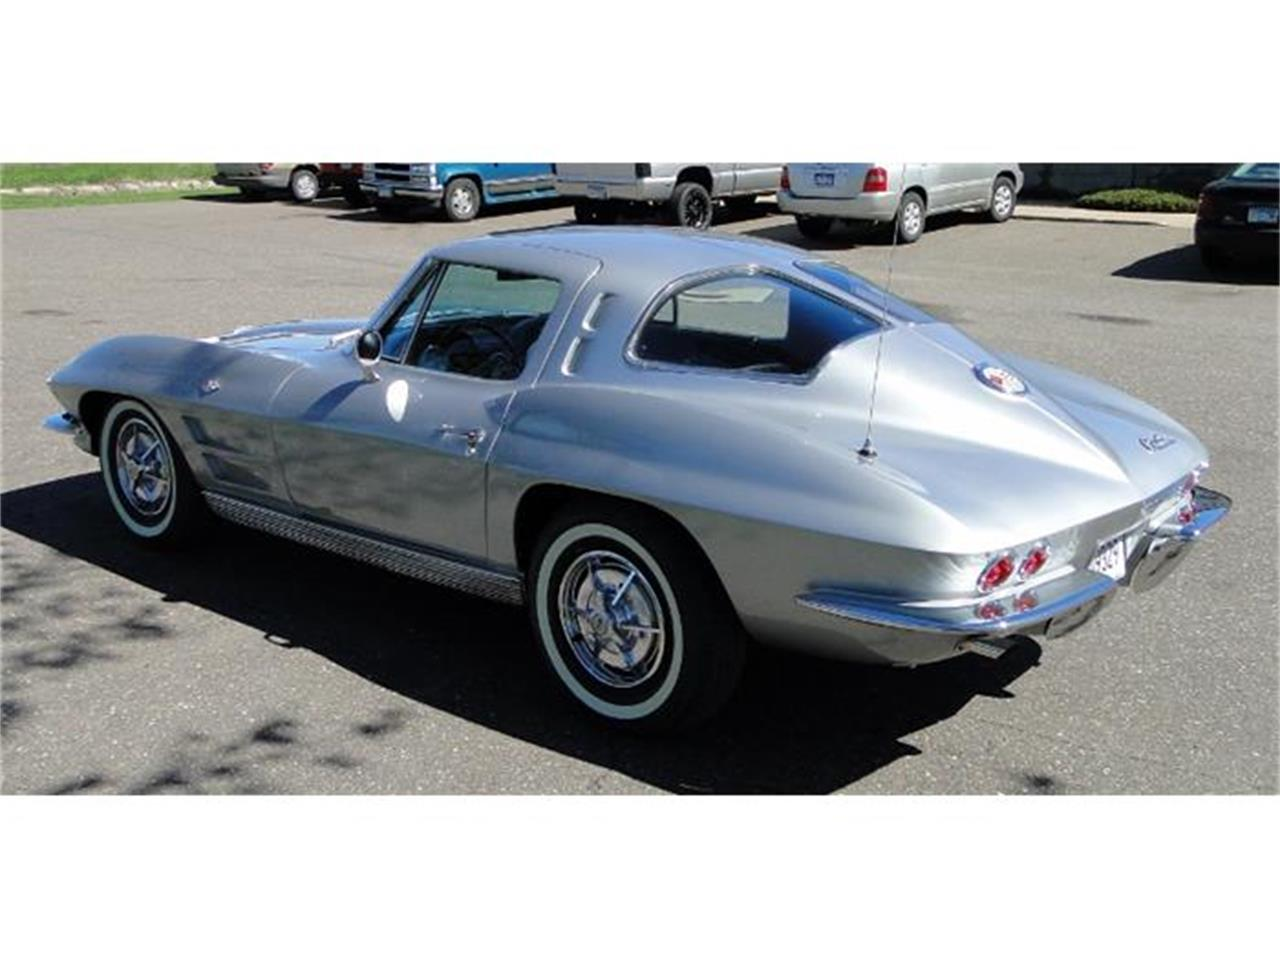 Large Picture of '63 Corvette located in Prior Lake Minnesota - $85,000.00 - I2BV